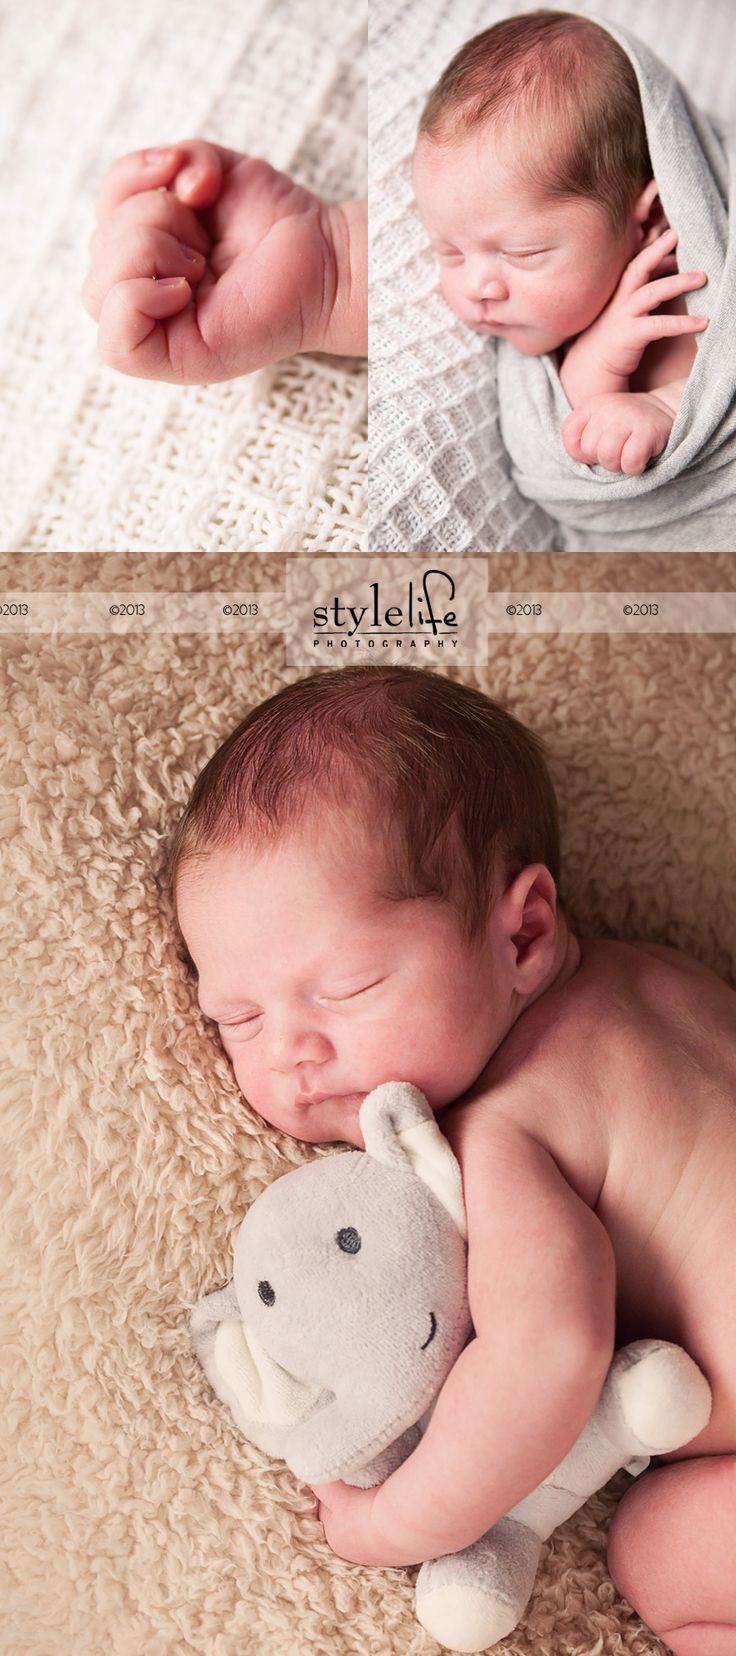 Jesse and I have been going over ideas for baby bentleys newborn shoot. This is one